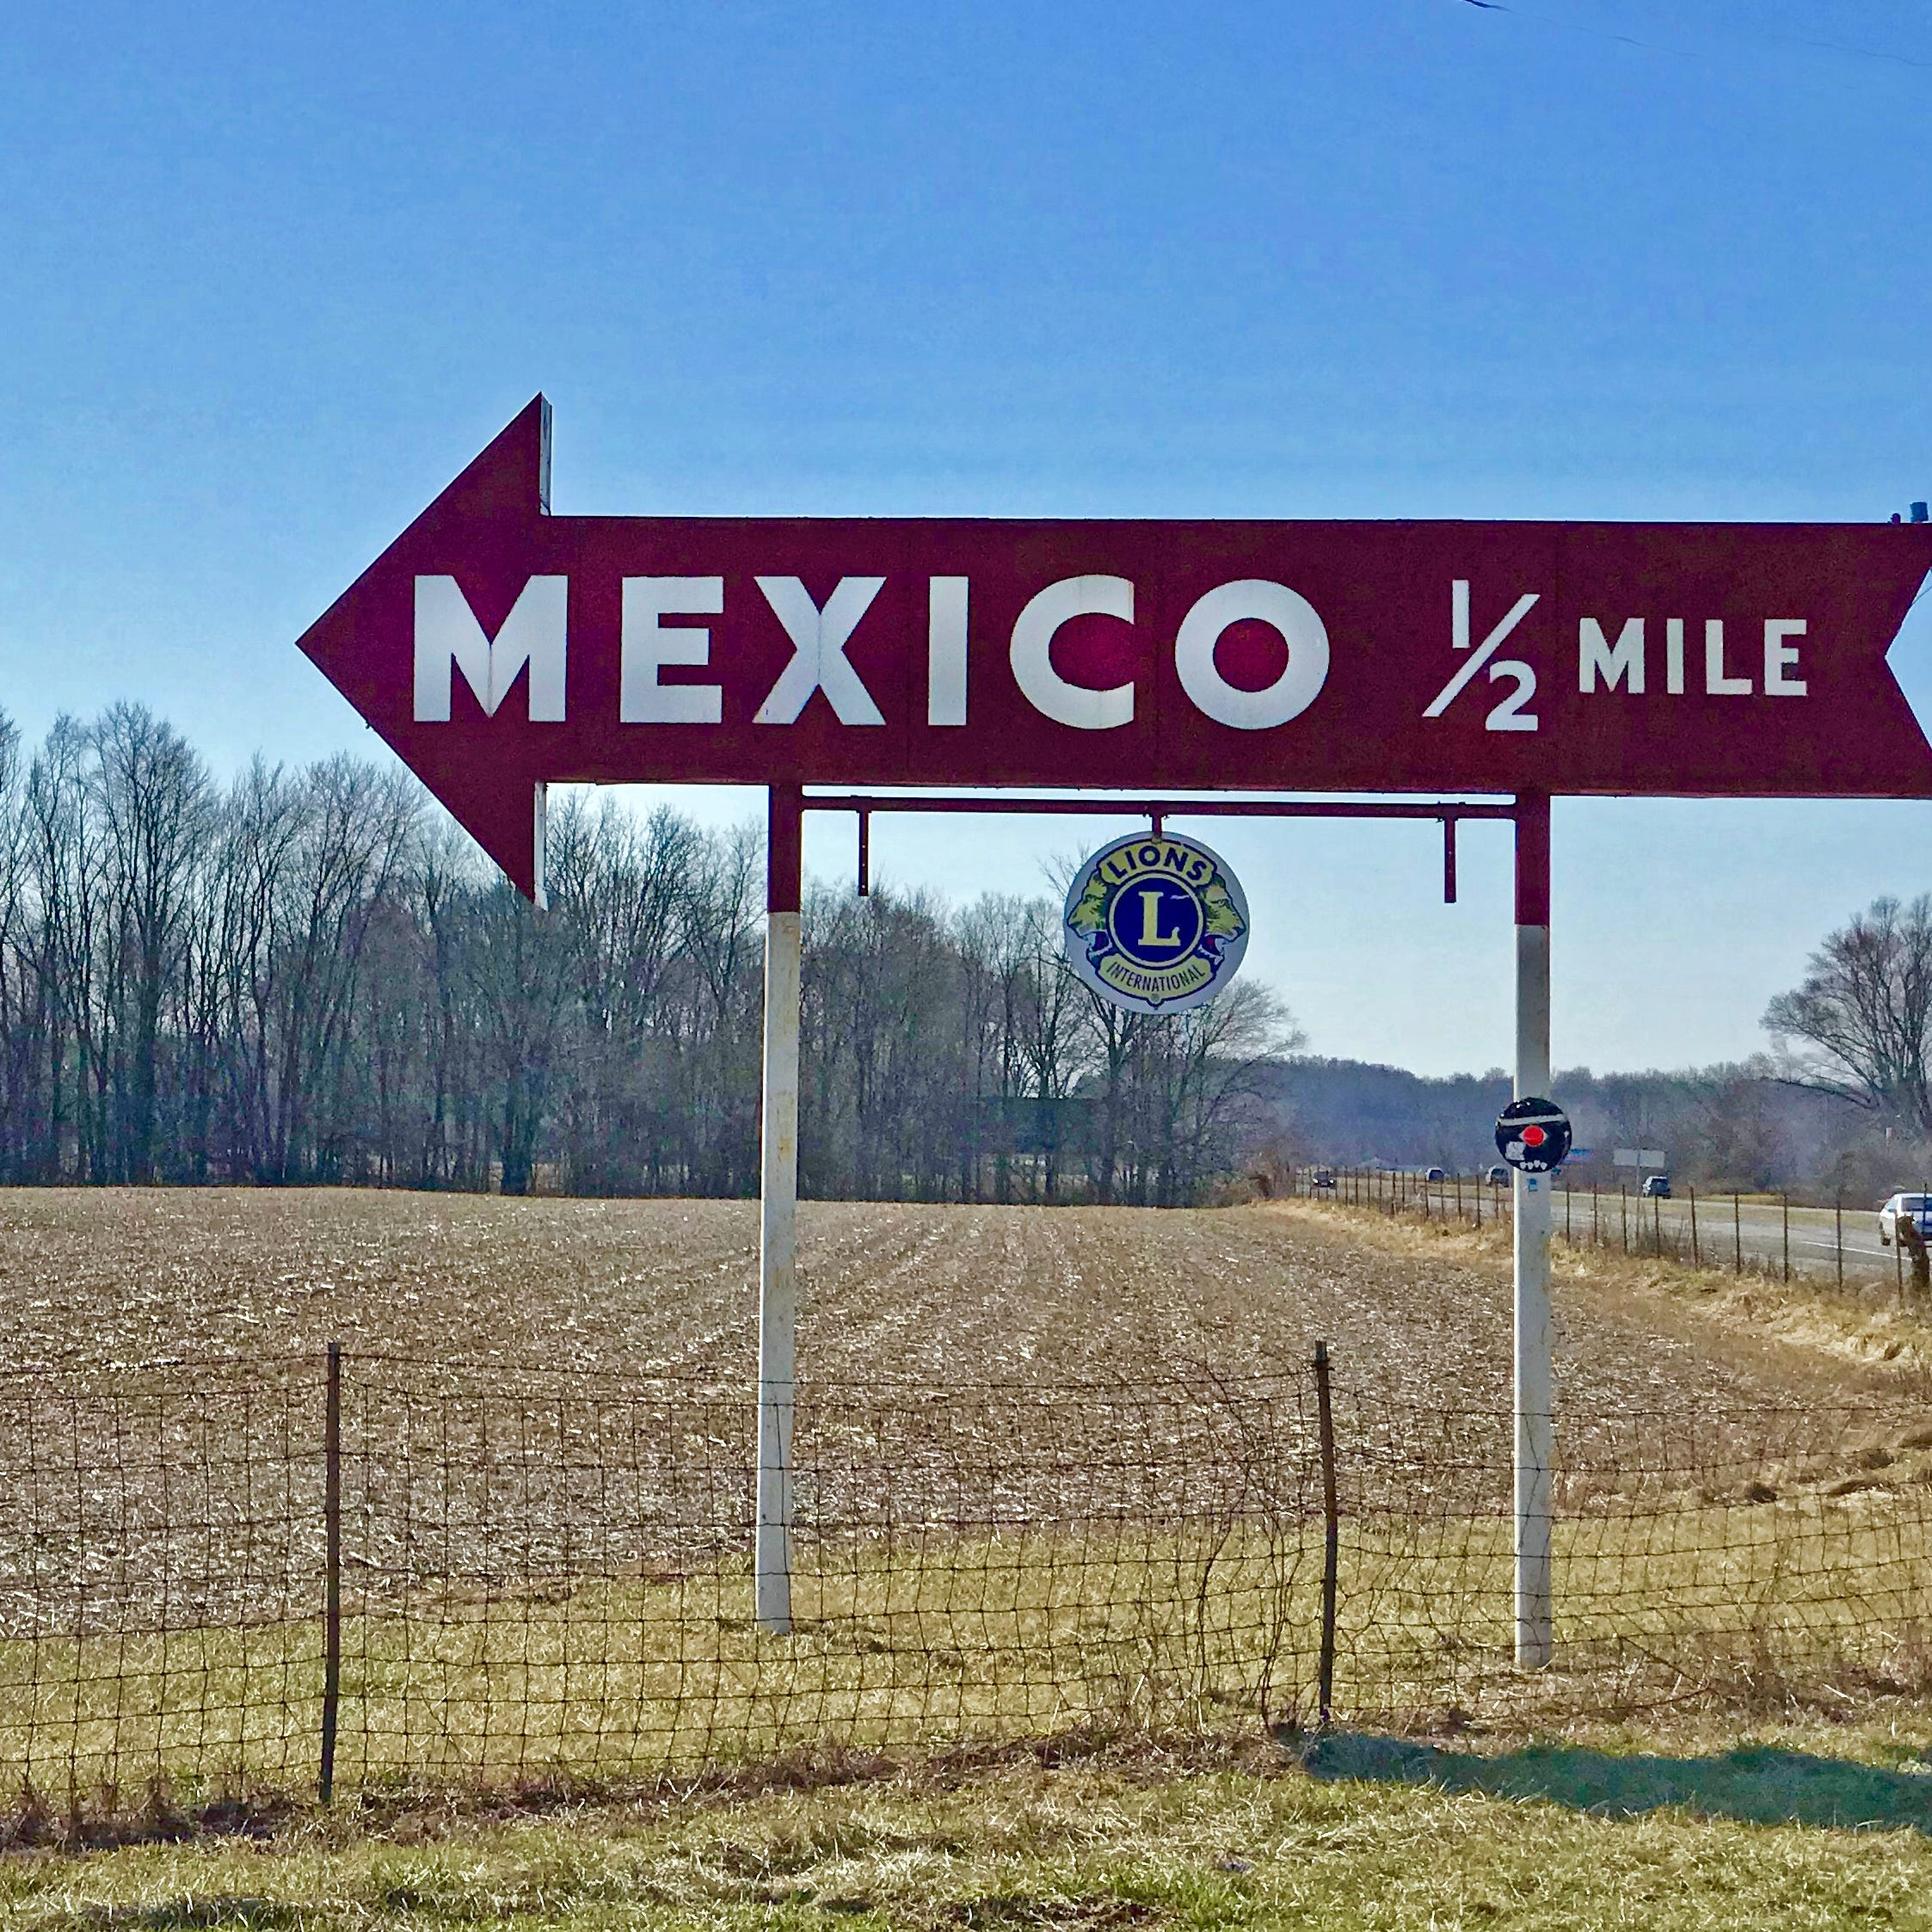 From Norway to Shanghai: Where Indiana's international town names come from